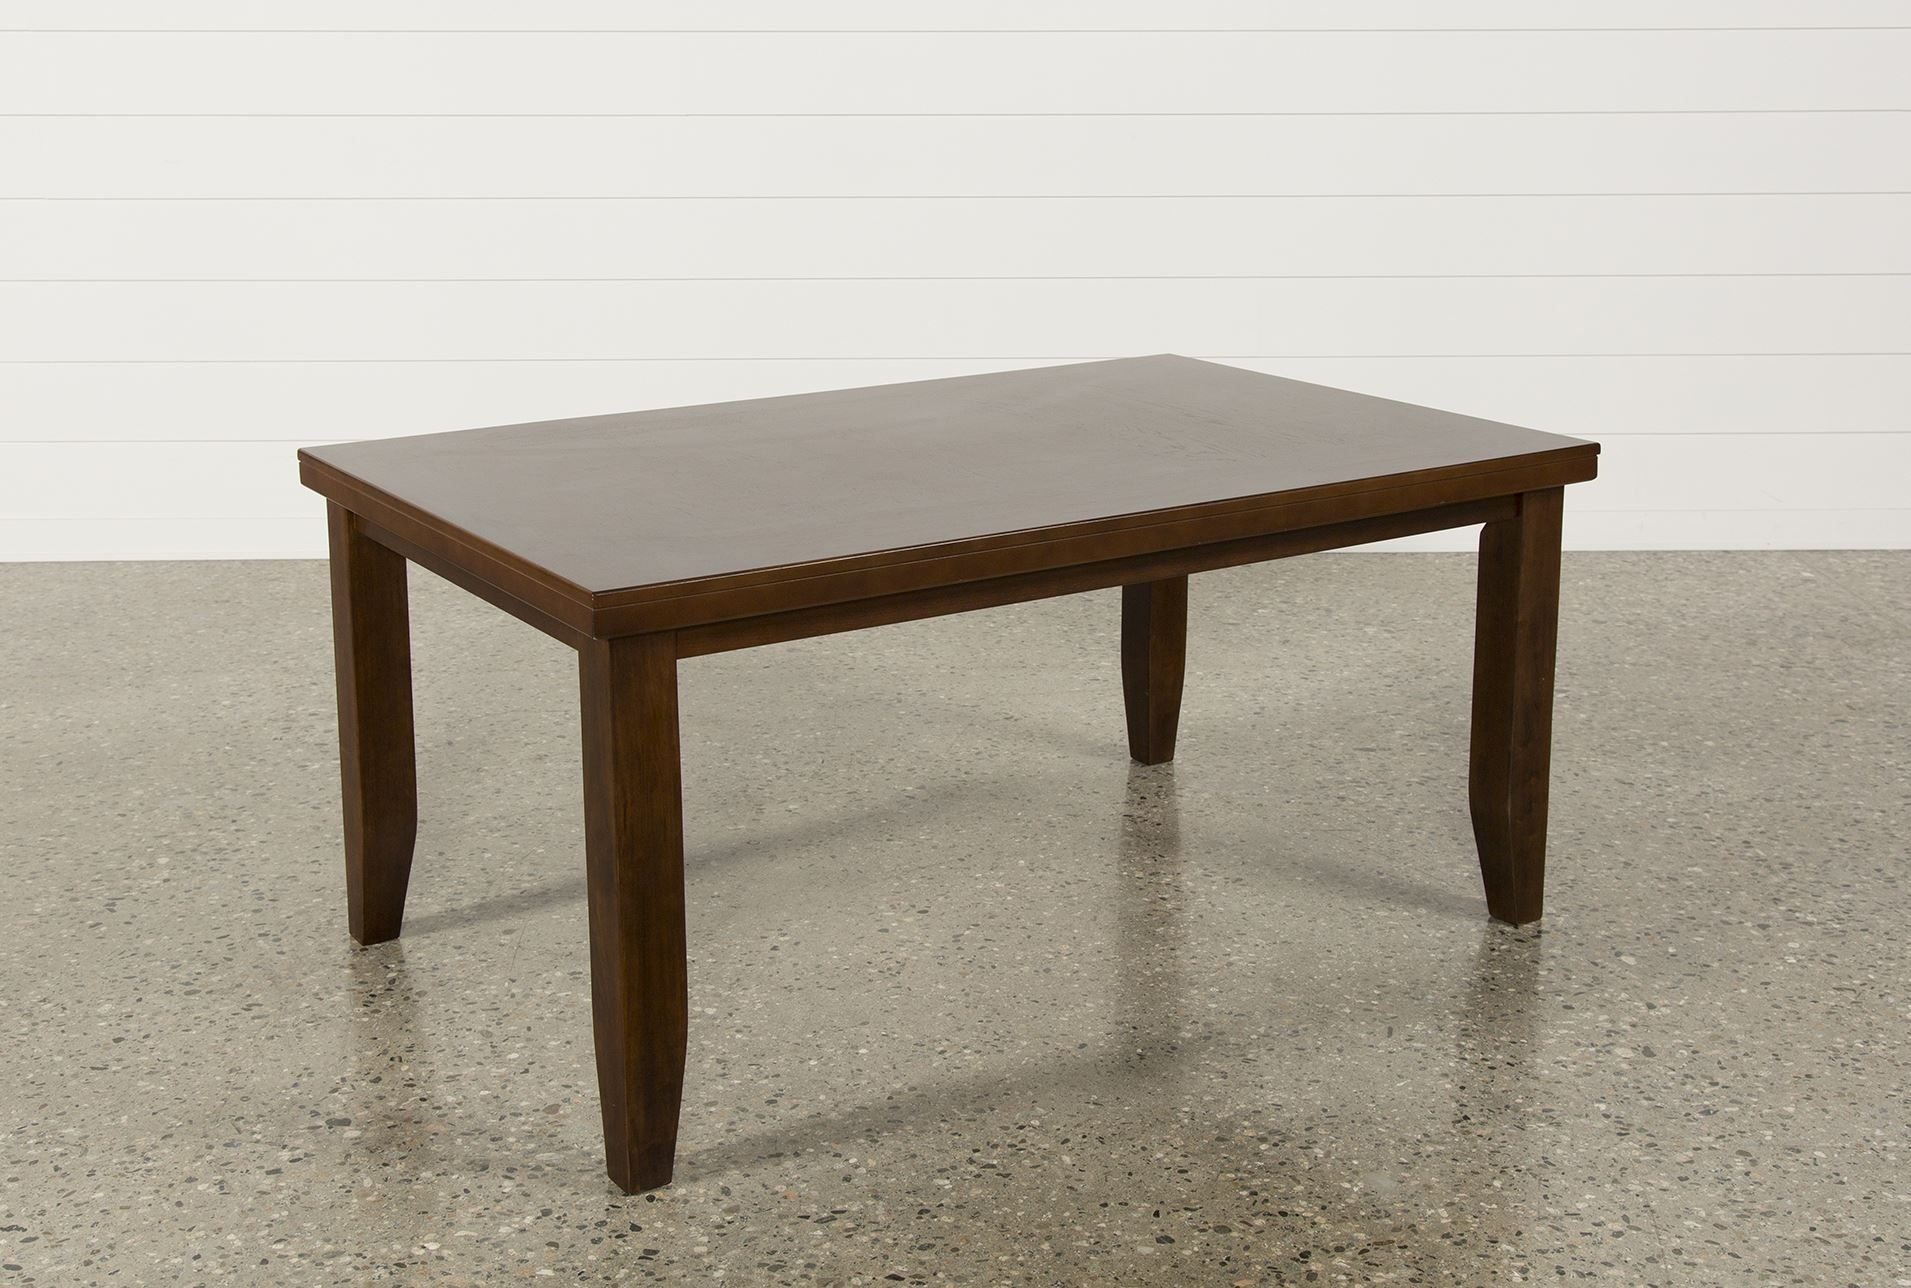 Bradford Dining Table | Tables | Pinterest | Living Spaces, Tables In Most Recently Released Bradford Dining Tables (View 12 of 20)